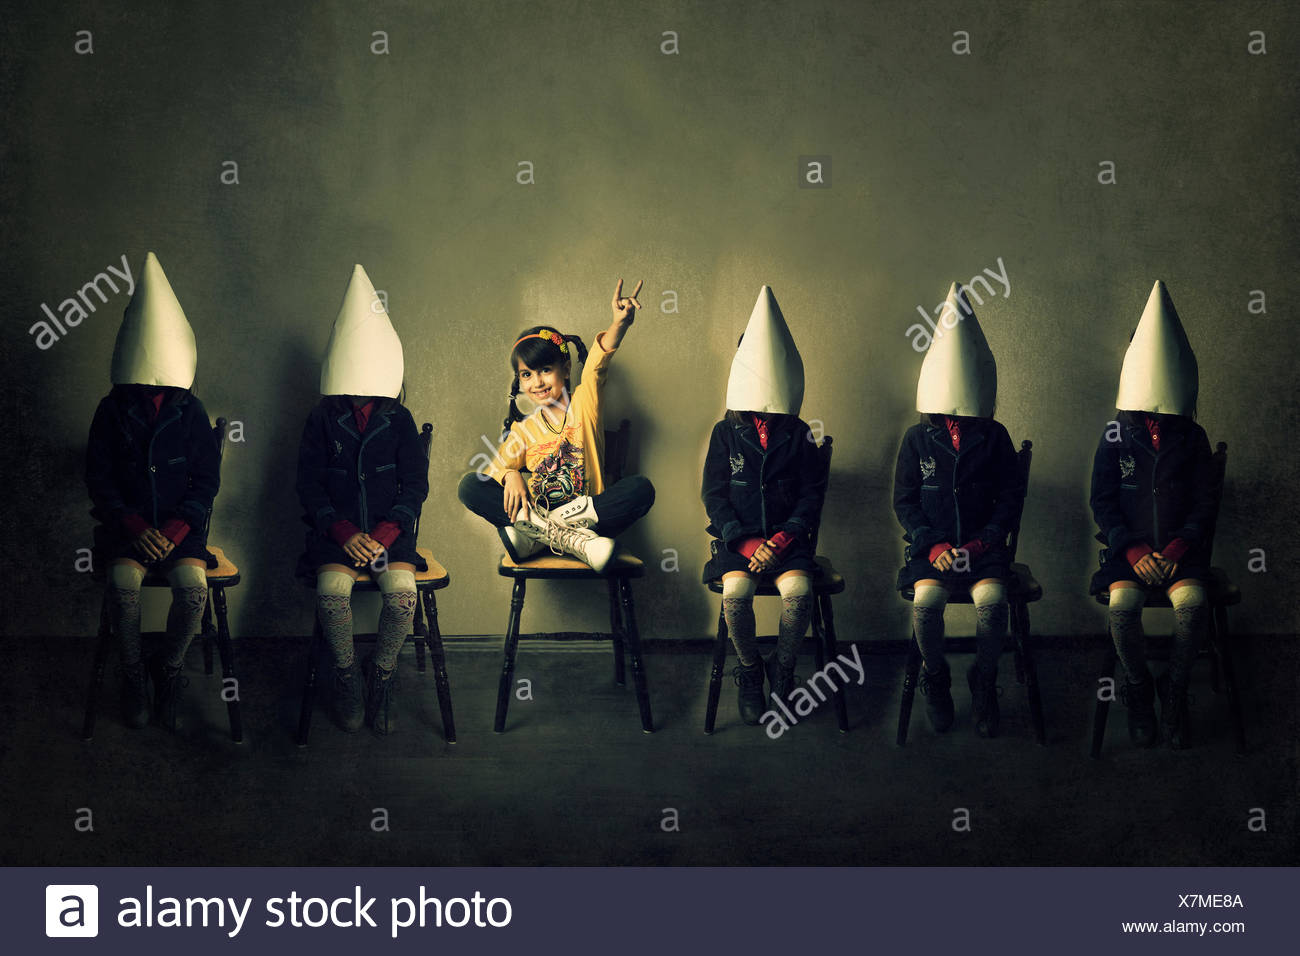 Six girls sitting on chairs in a row - Stock Image